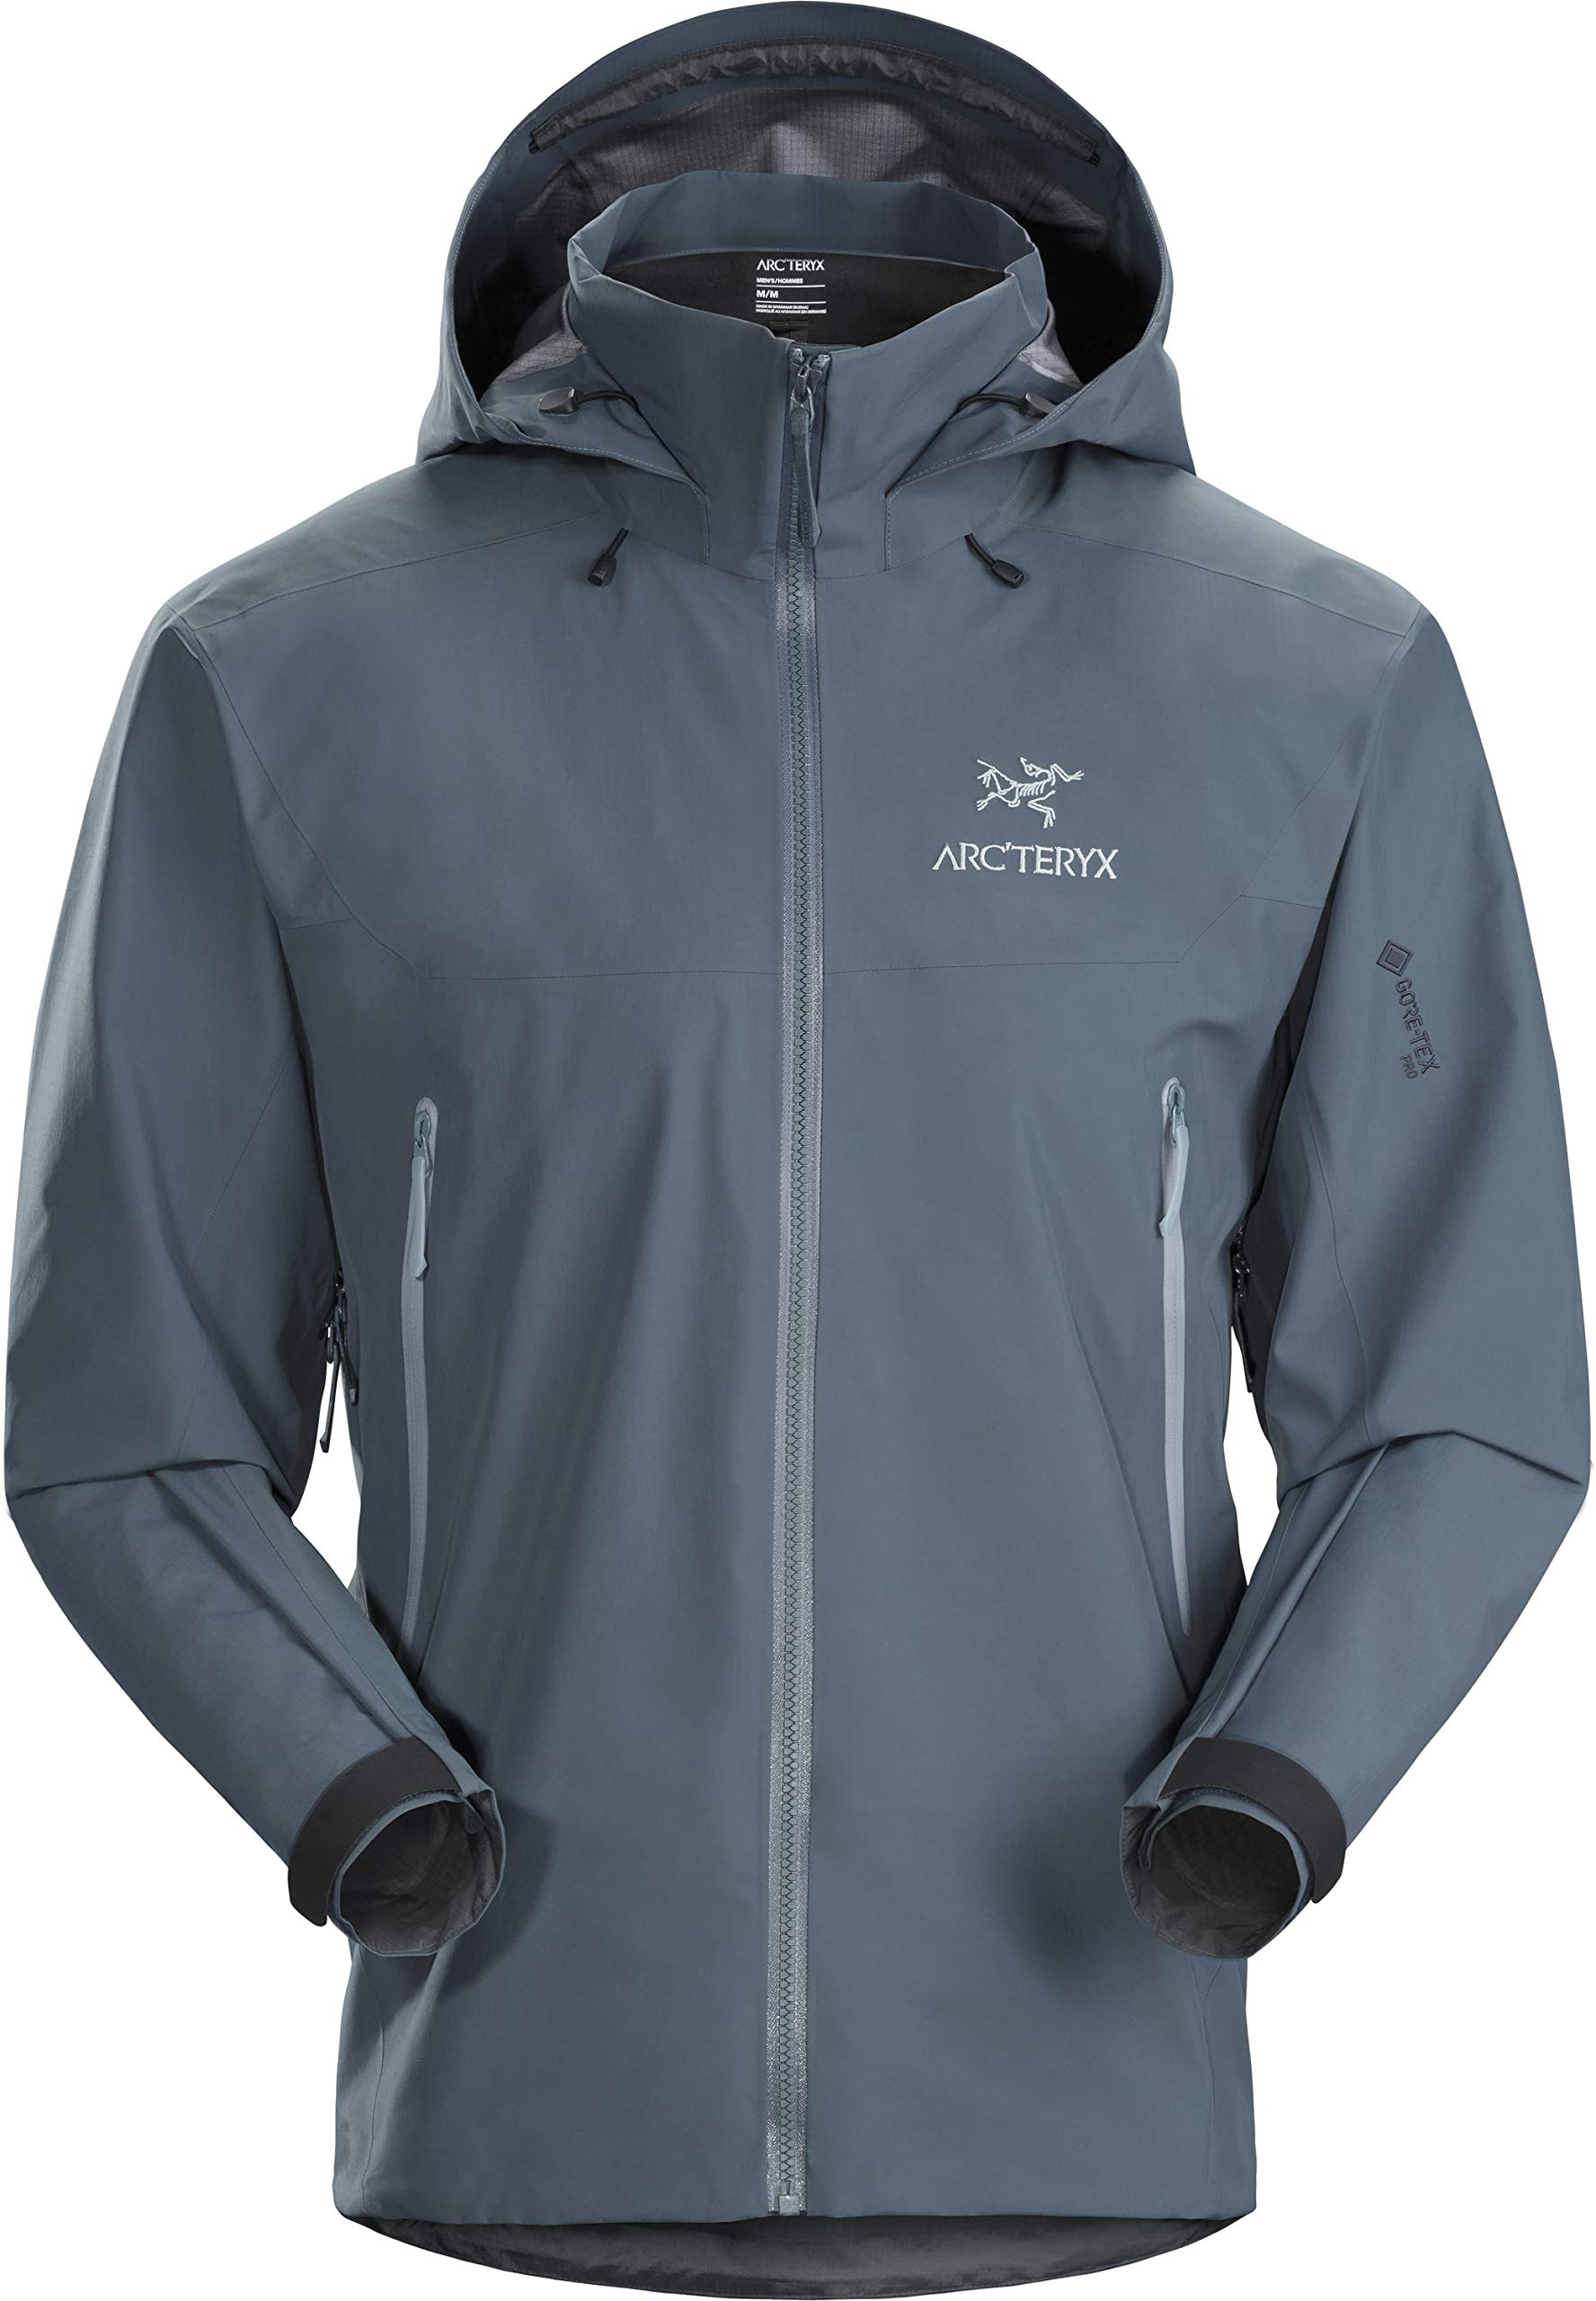 Arc'teryx Beta AR Jacket Men's (Neptune, Large) by Arc'teryx